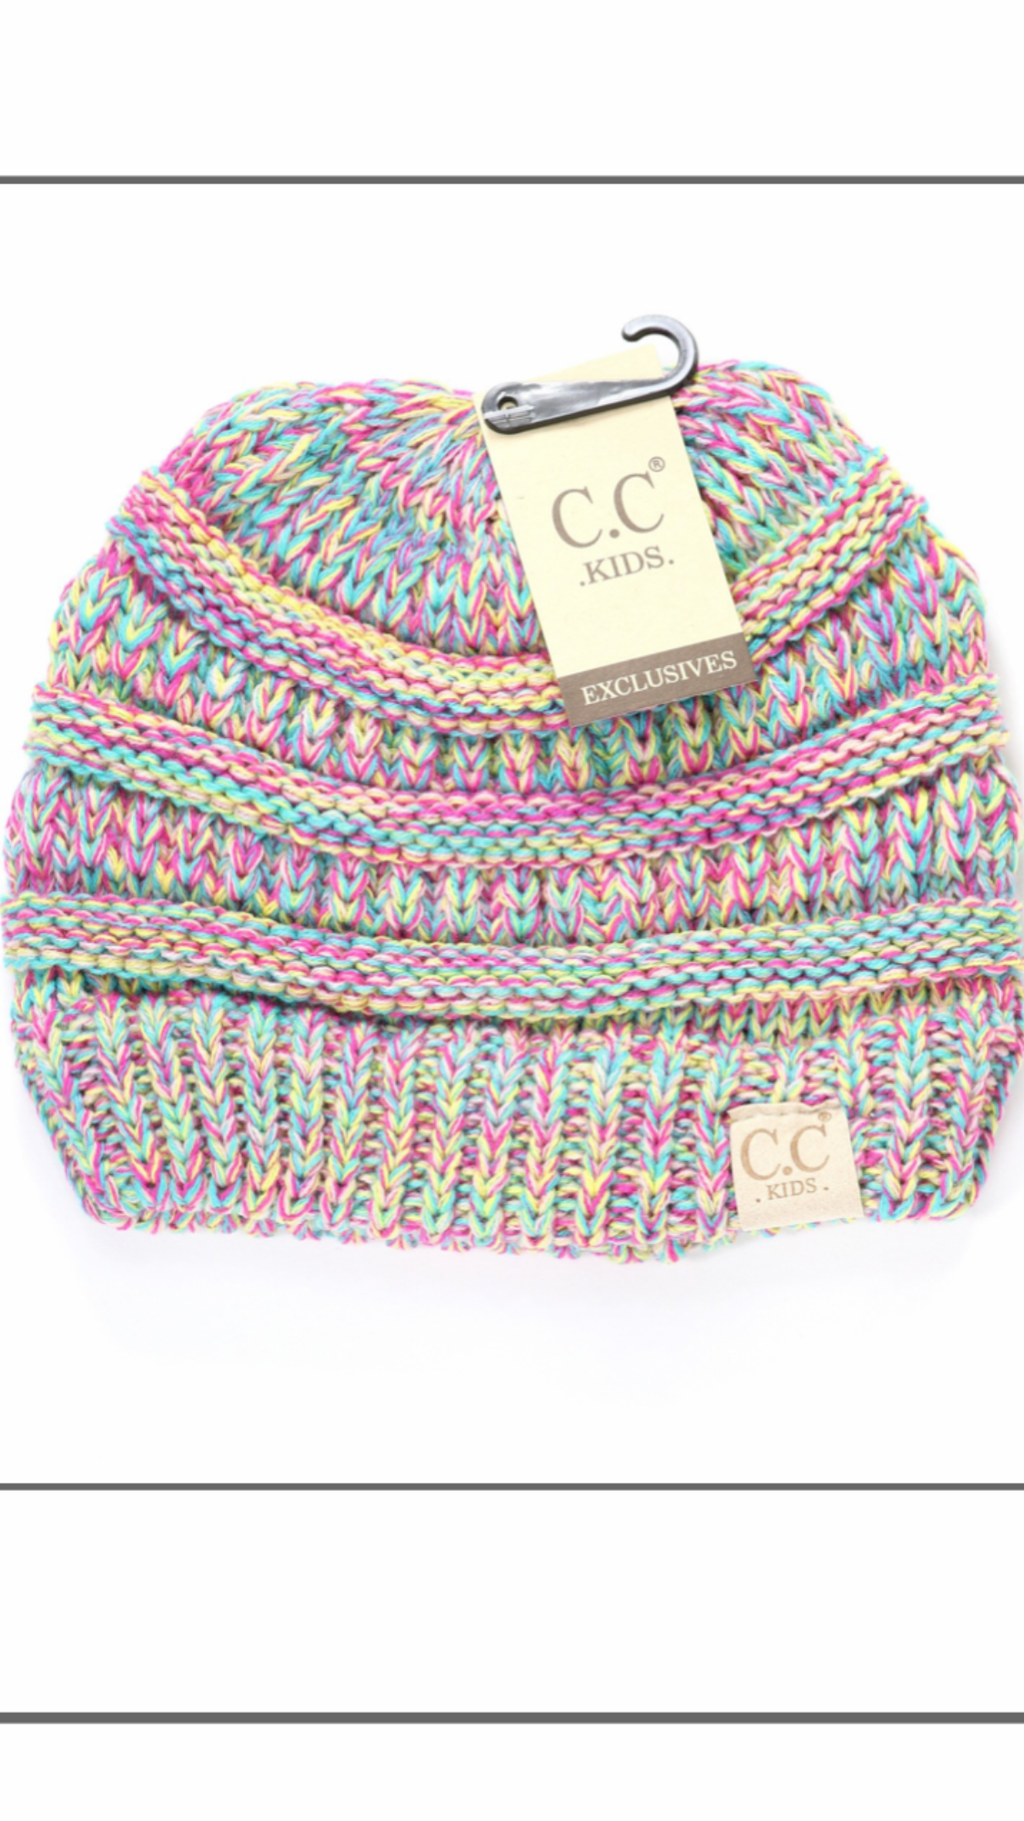 CC Beanie Kids Multi Color Cable Knit Pom